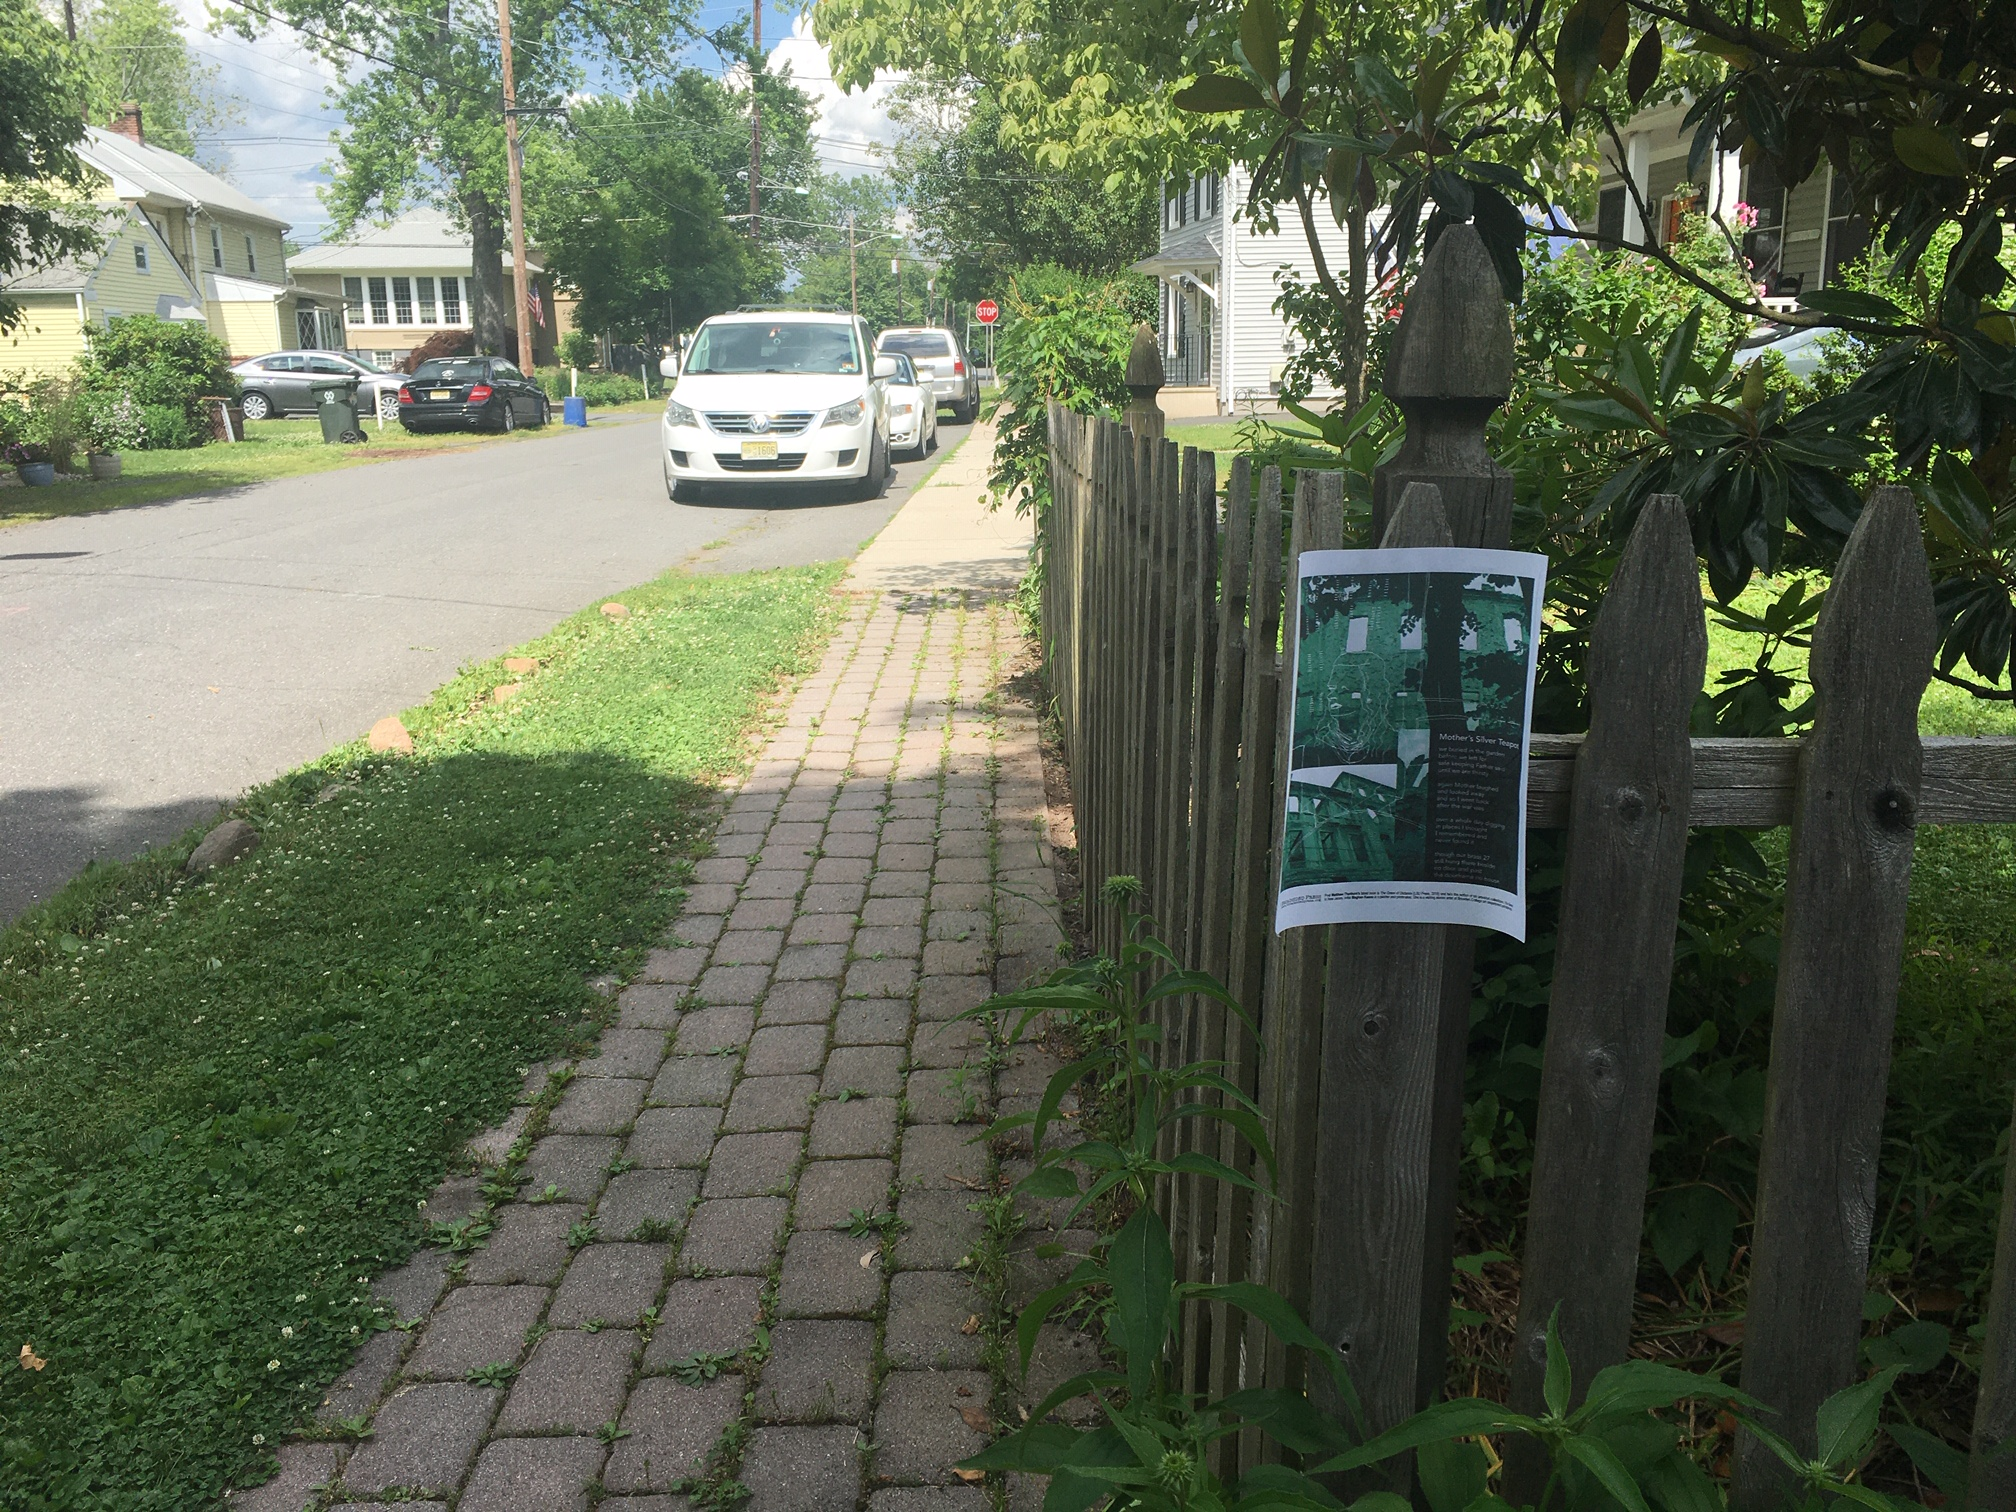 Broadside on corner of fence on sidewalk stretching forward with cars towards the end.